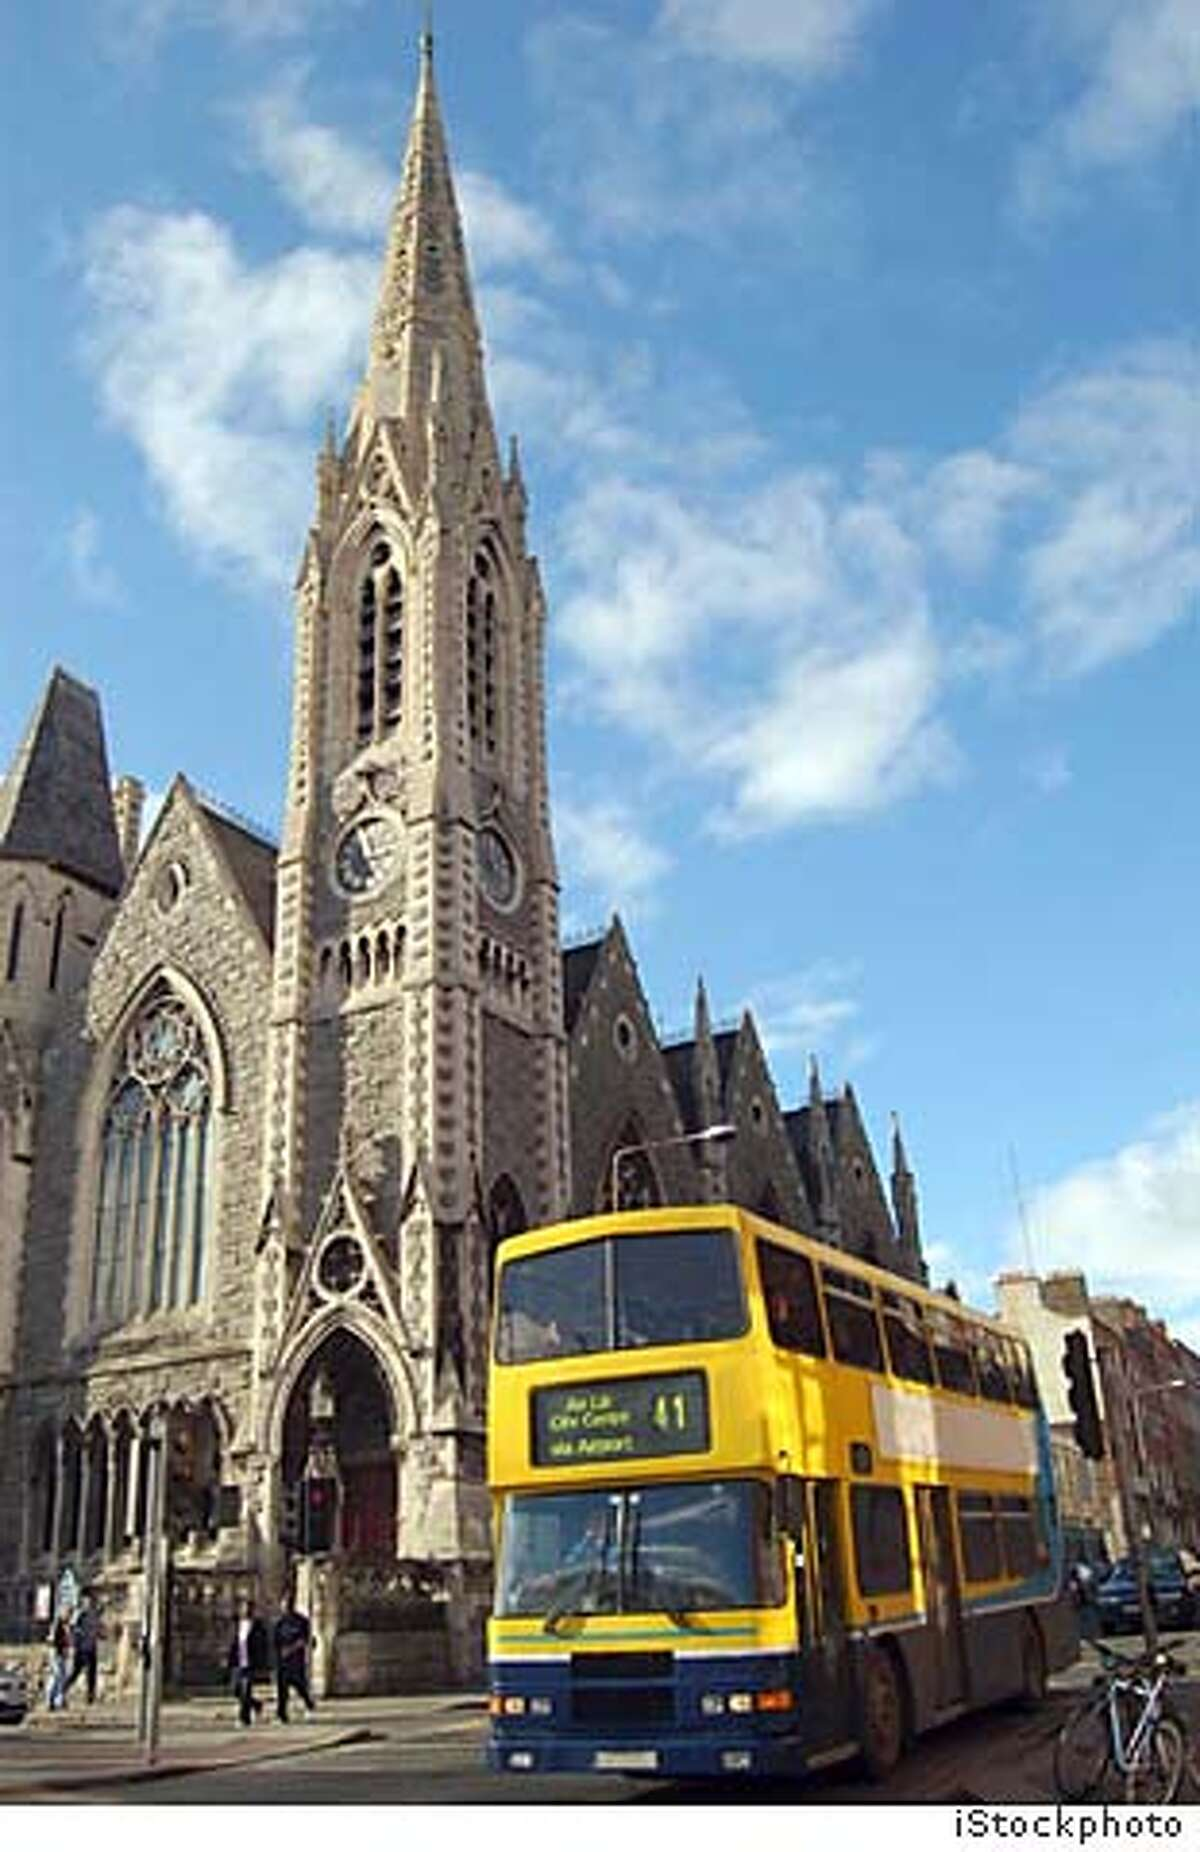 The city's traditions live on at Christ Church Cathedral. Photo courtesy of iStockphoto